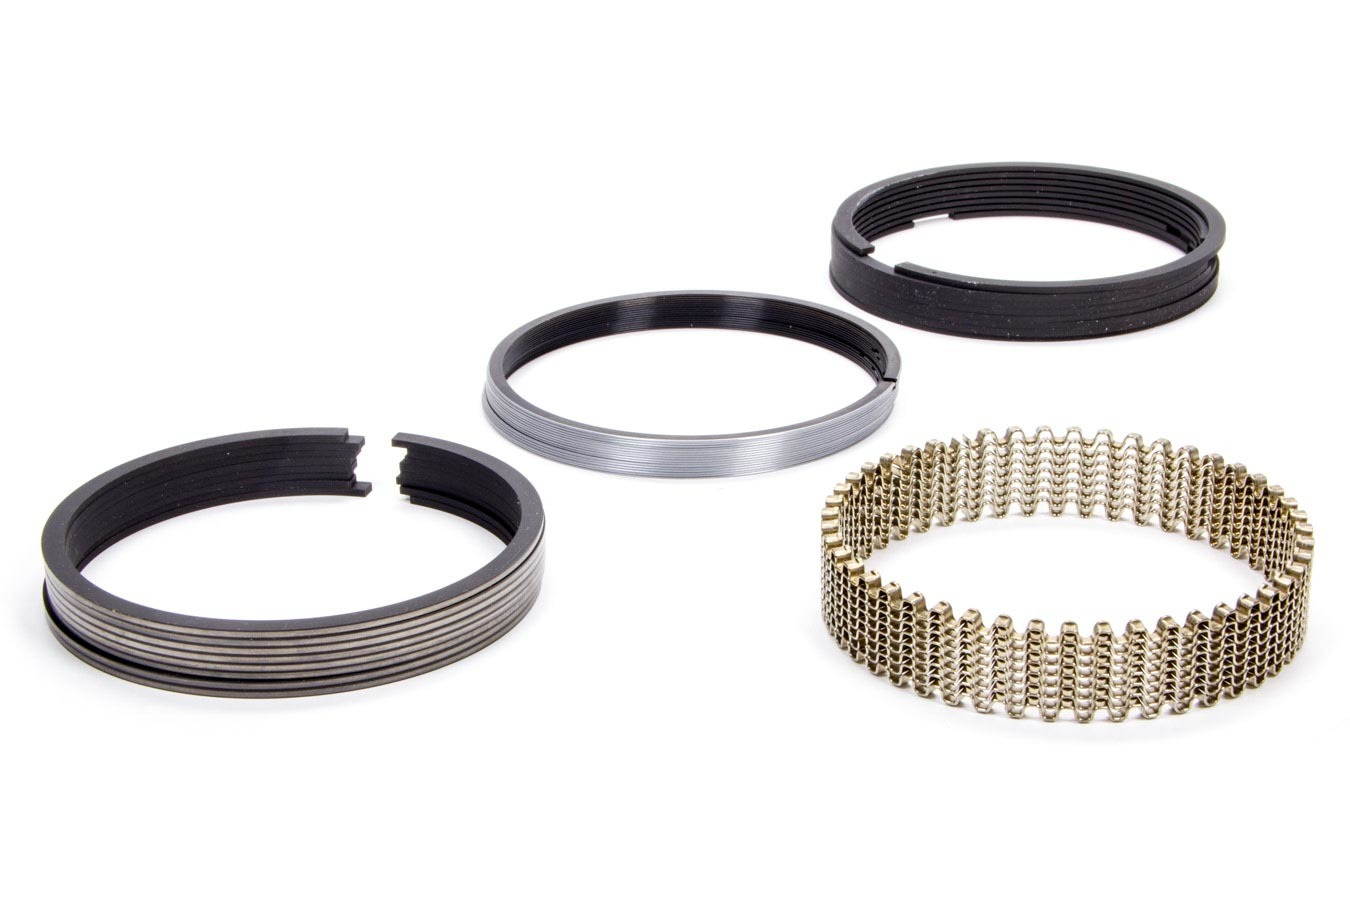 Hastings 2M661040 Piston Rings, 4.165 in Bore, 5/64 x 5/64 x 3/16 in Thick, Standard Tension, Moly, 8 Cylinder, Kit